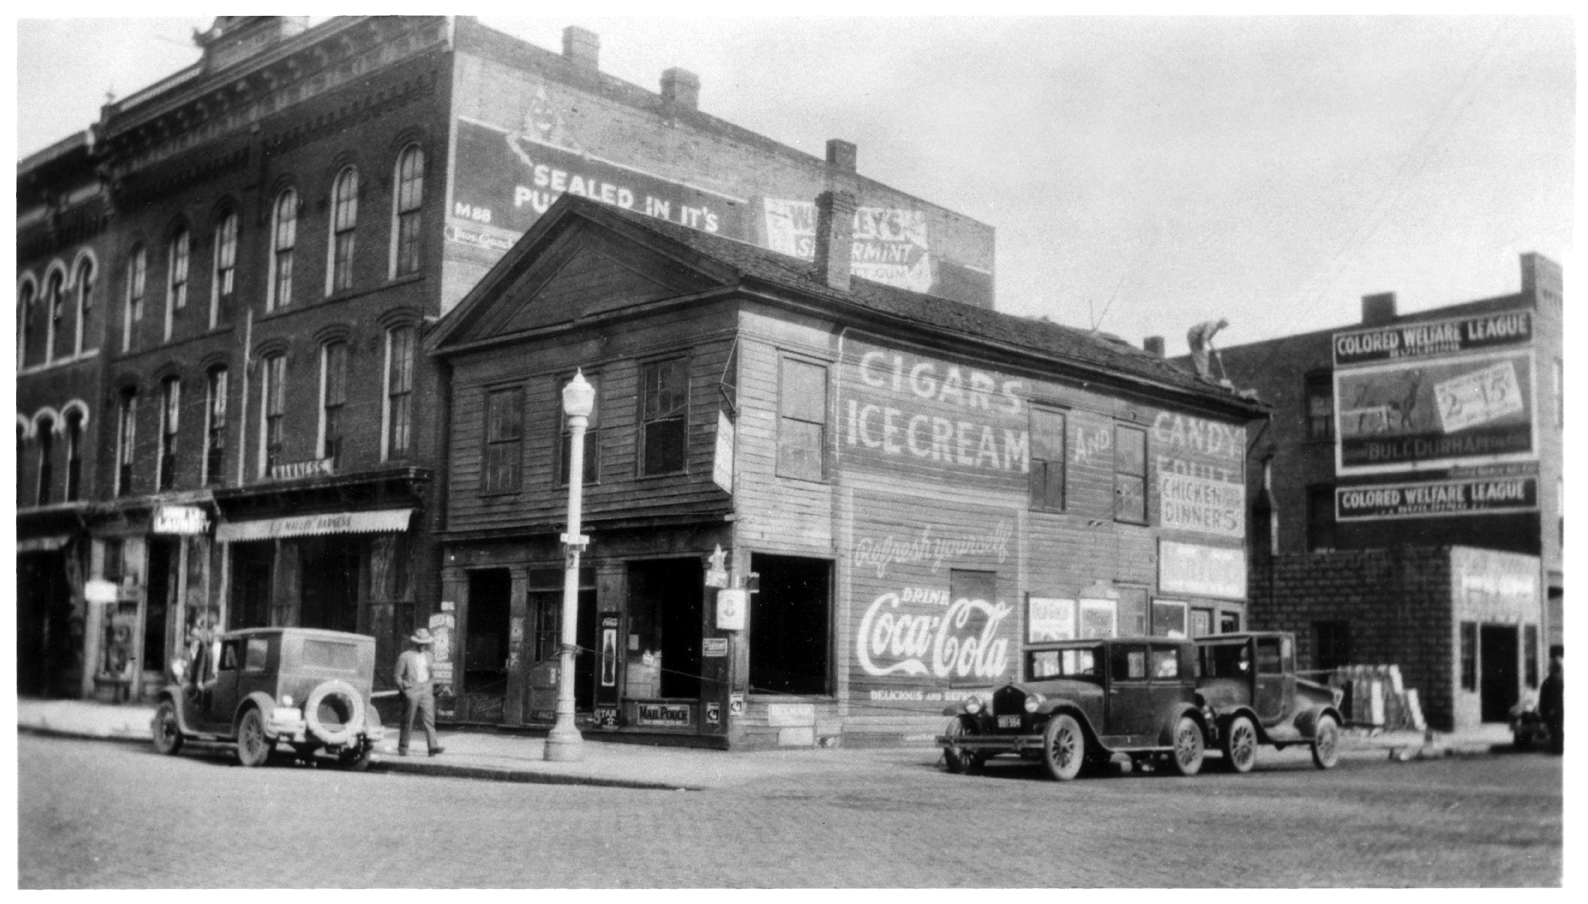 The corner of Ann St. & Fourth Ave. with a Greek Revival building on Ann St. and a Colored Welfare League sign on the Kayser image